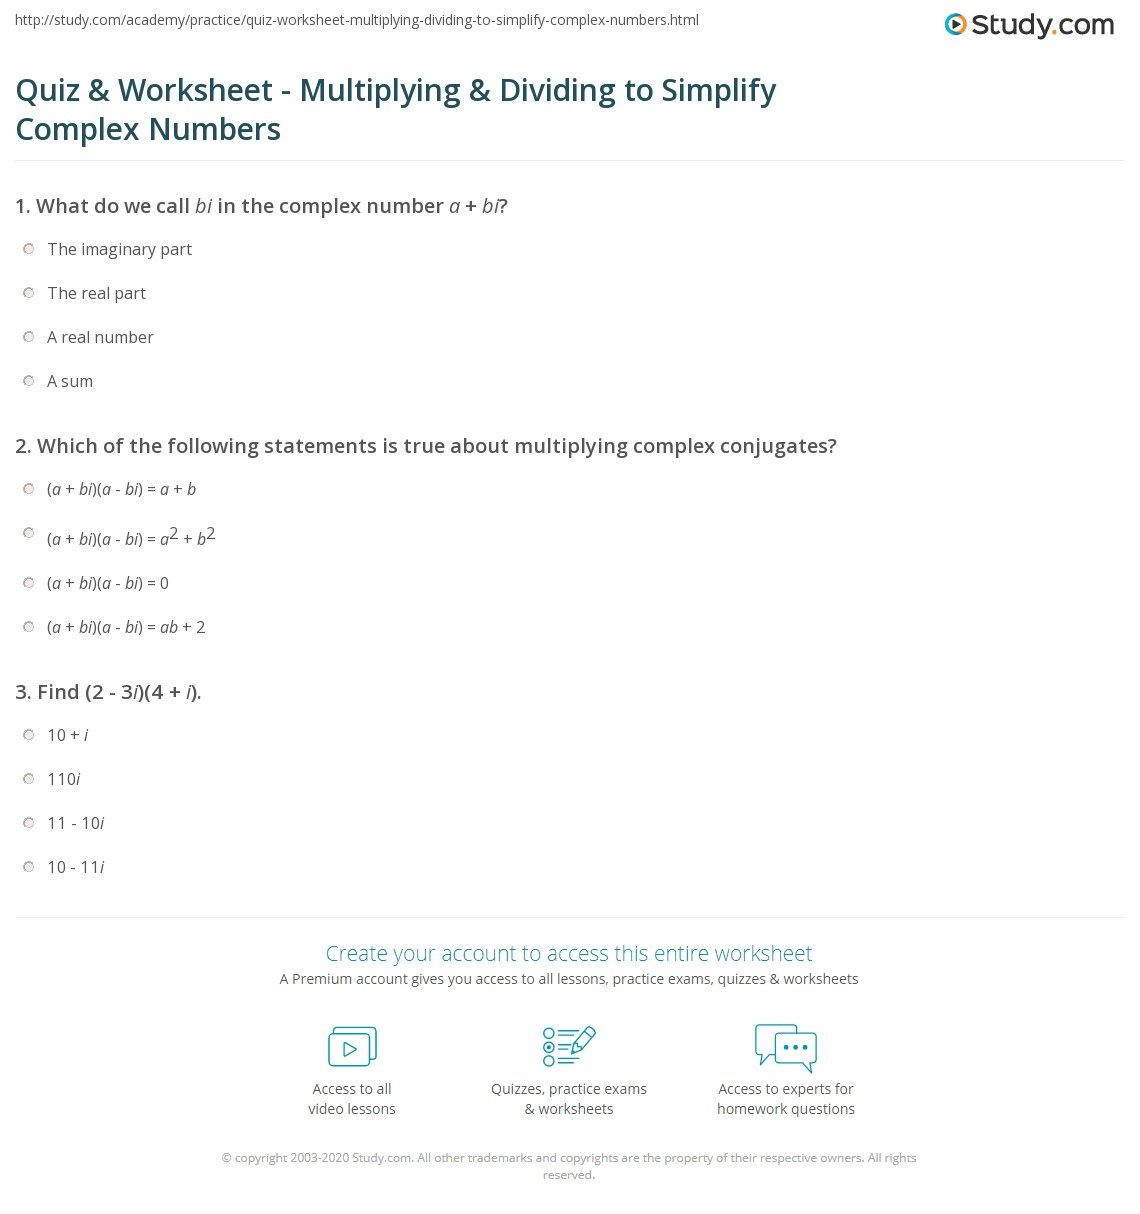 quiz worksheet multiplying dividing to simplify complex numbers. Black Bedroom Furniture Sets. Home Design Ideas